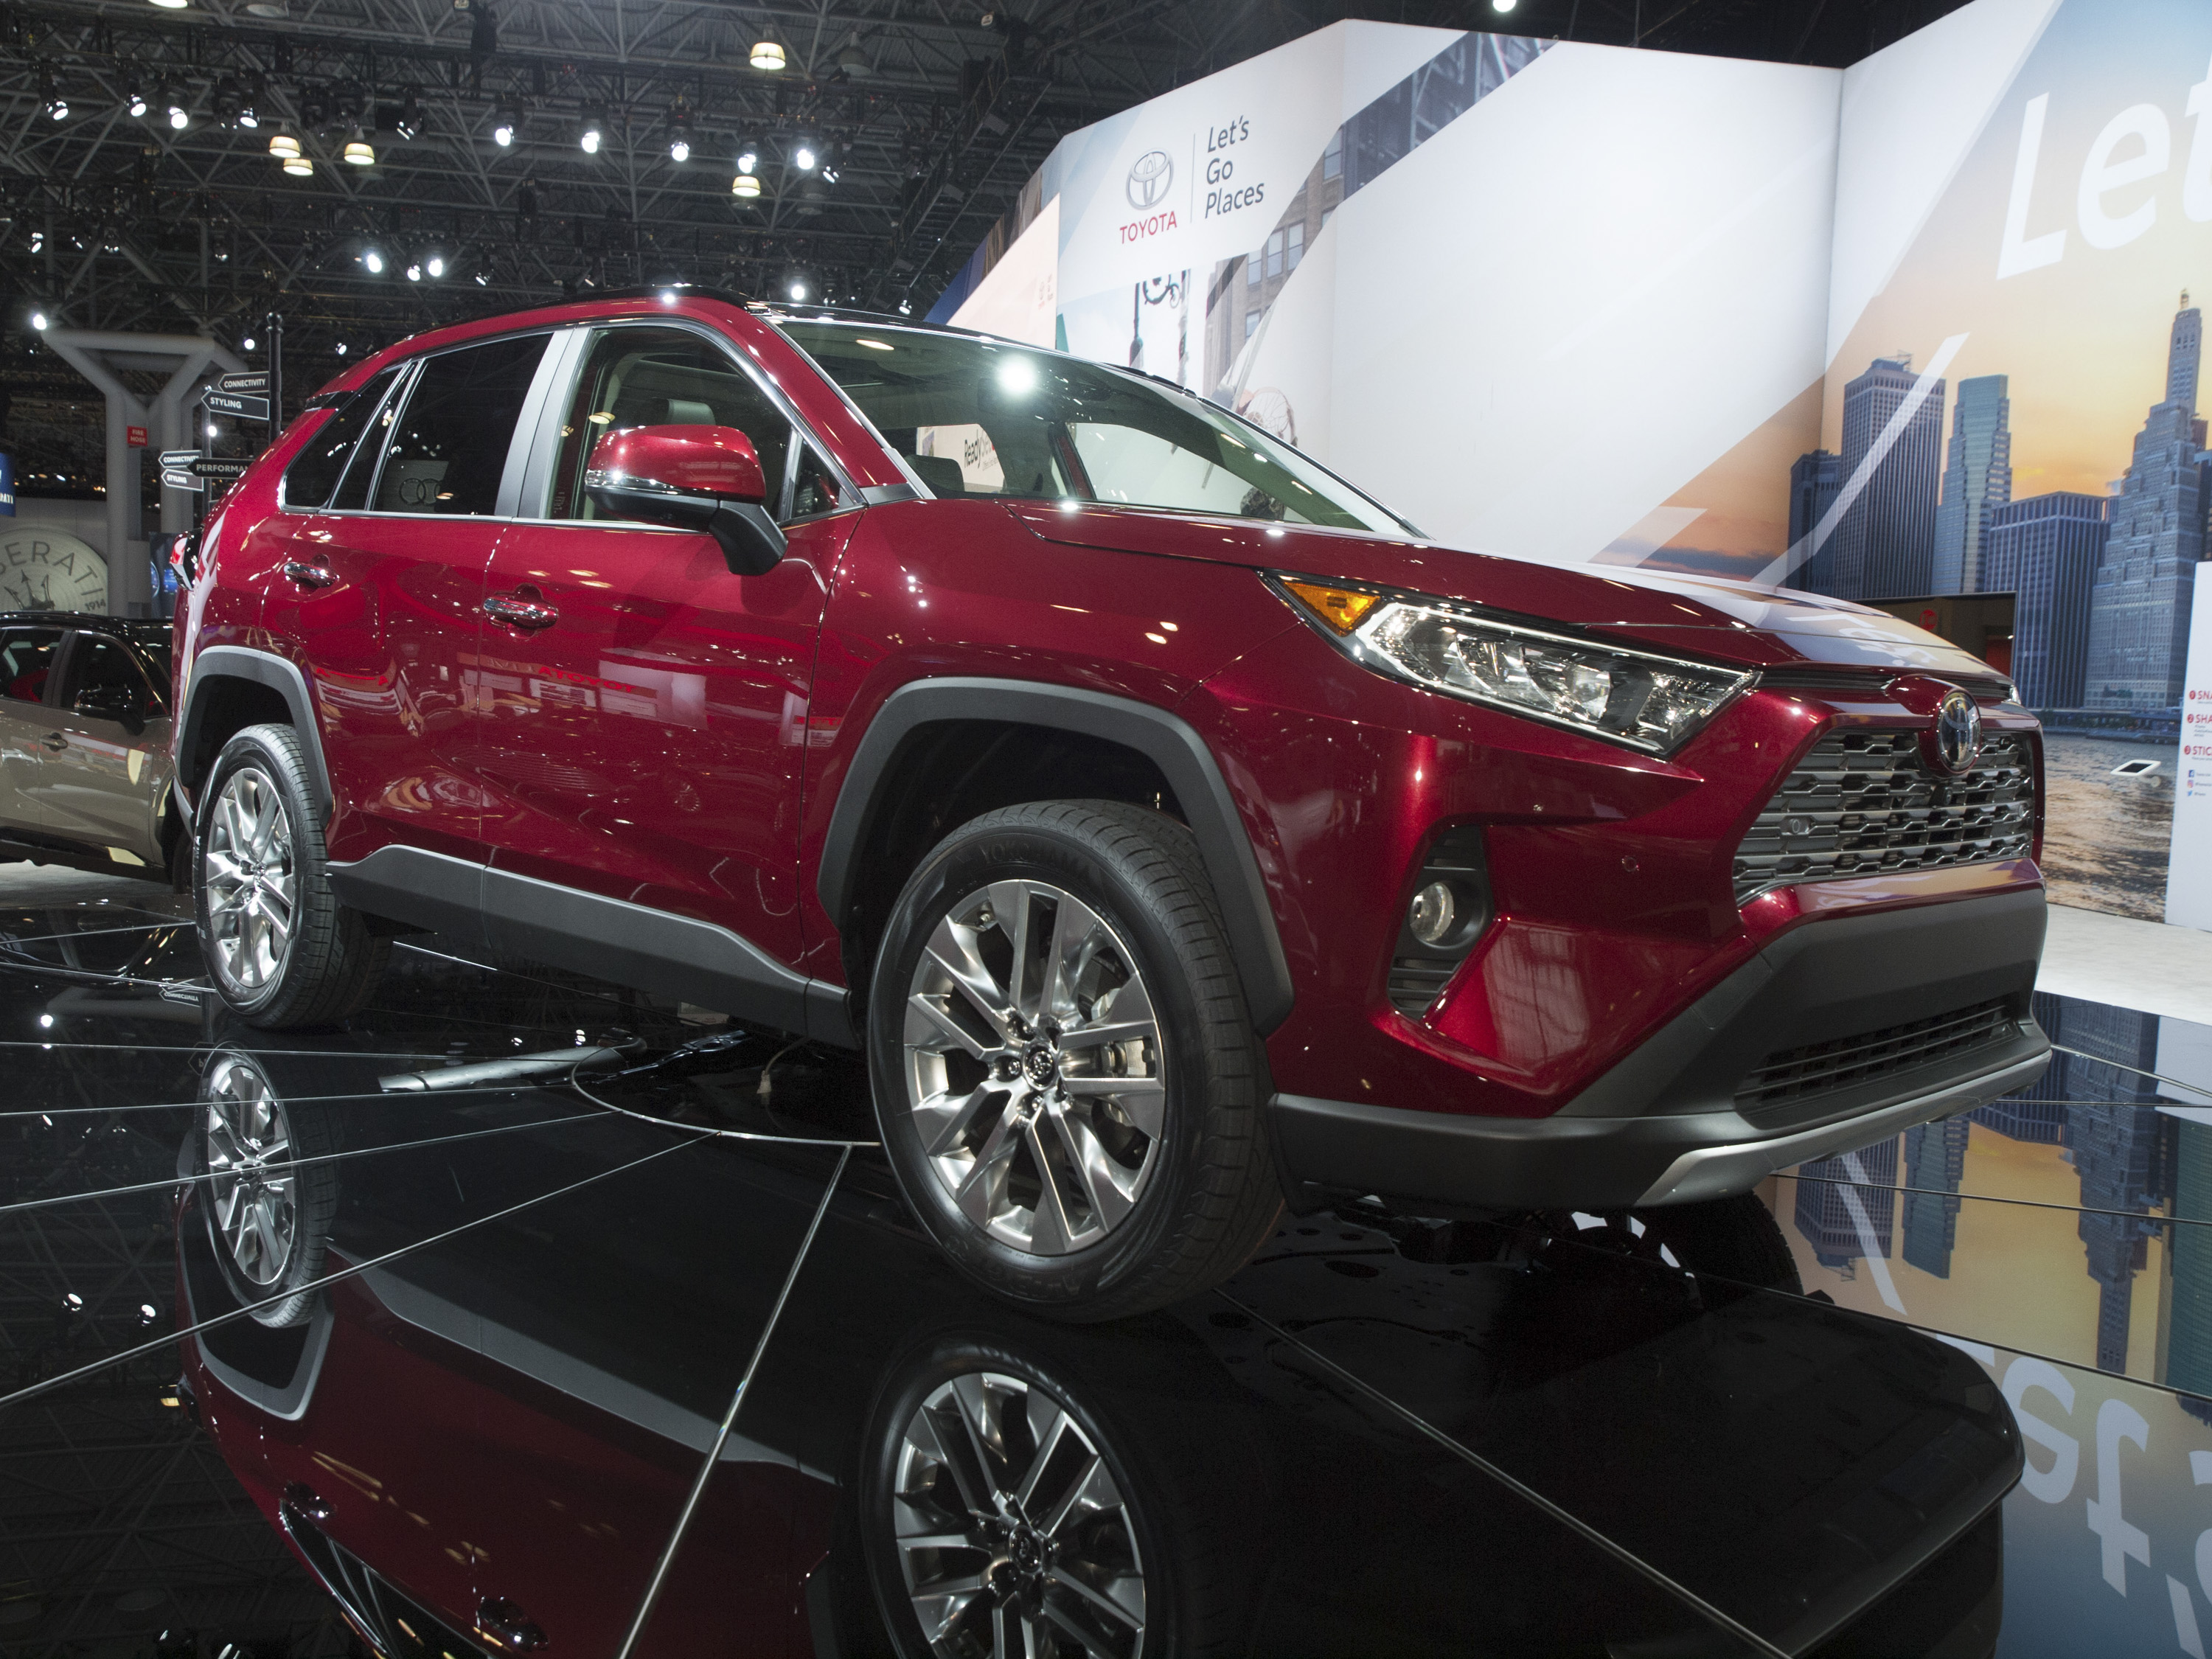 2019 Toyota Rav4 Top Speed 2014 4runner Limited On 12 Volt Toggle Switch Wiring Diagram